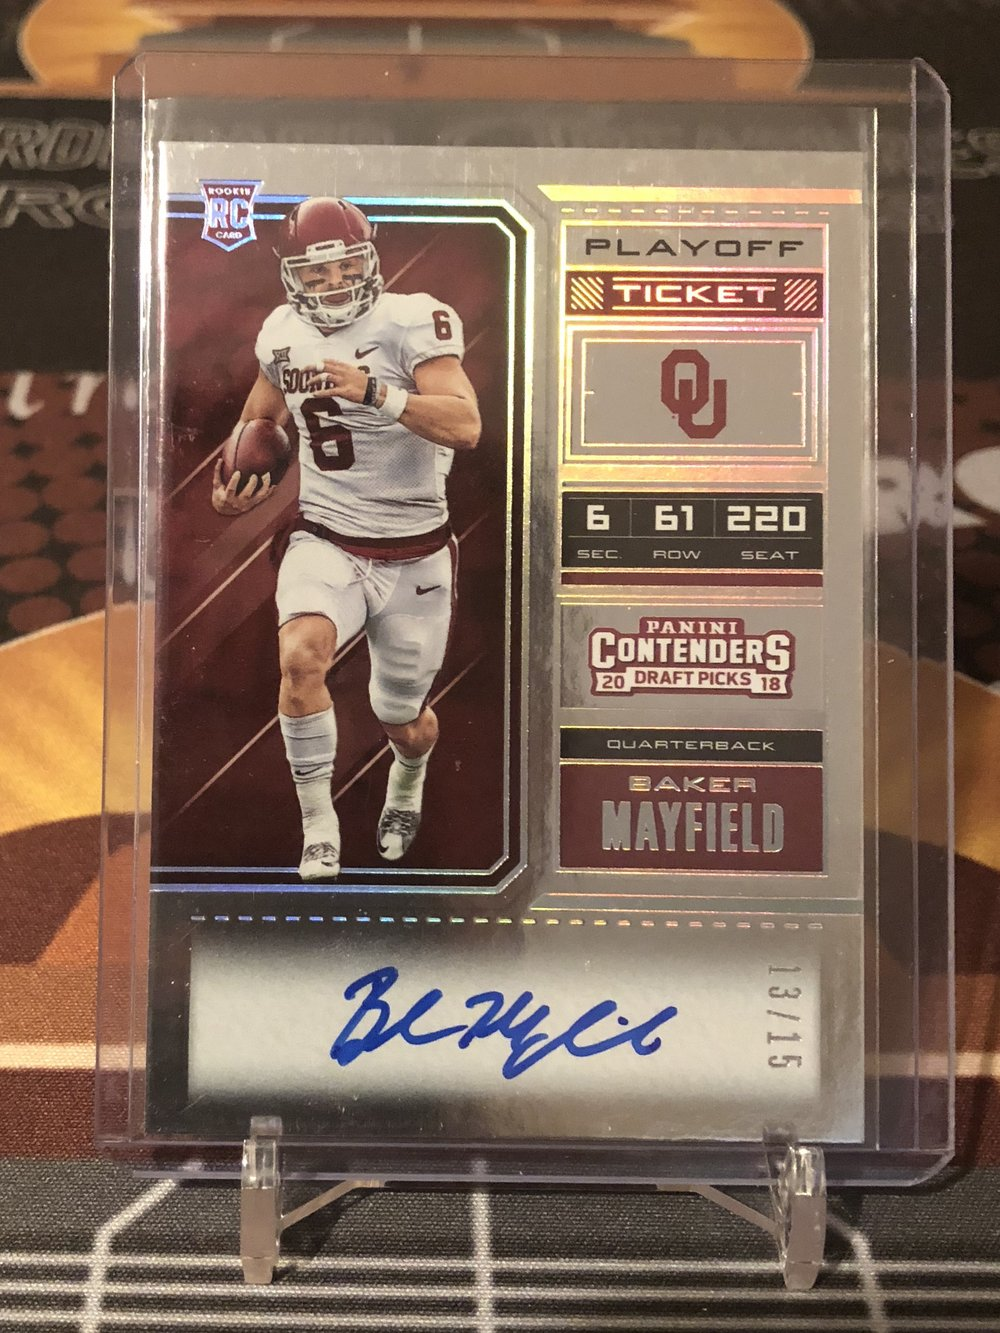 2018 Panini Contenders Draft Picks Baker Mayfield Playoff Ticket Auto /15